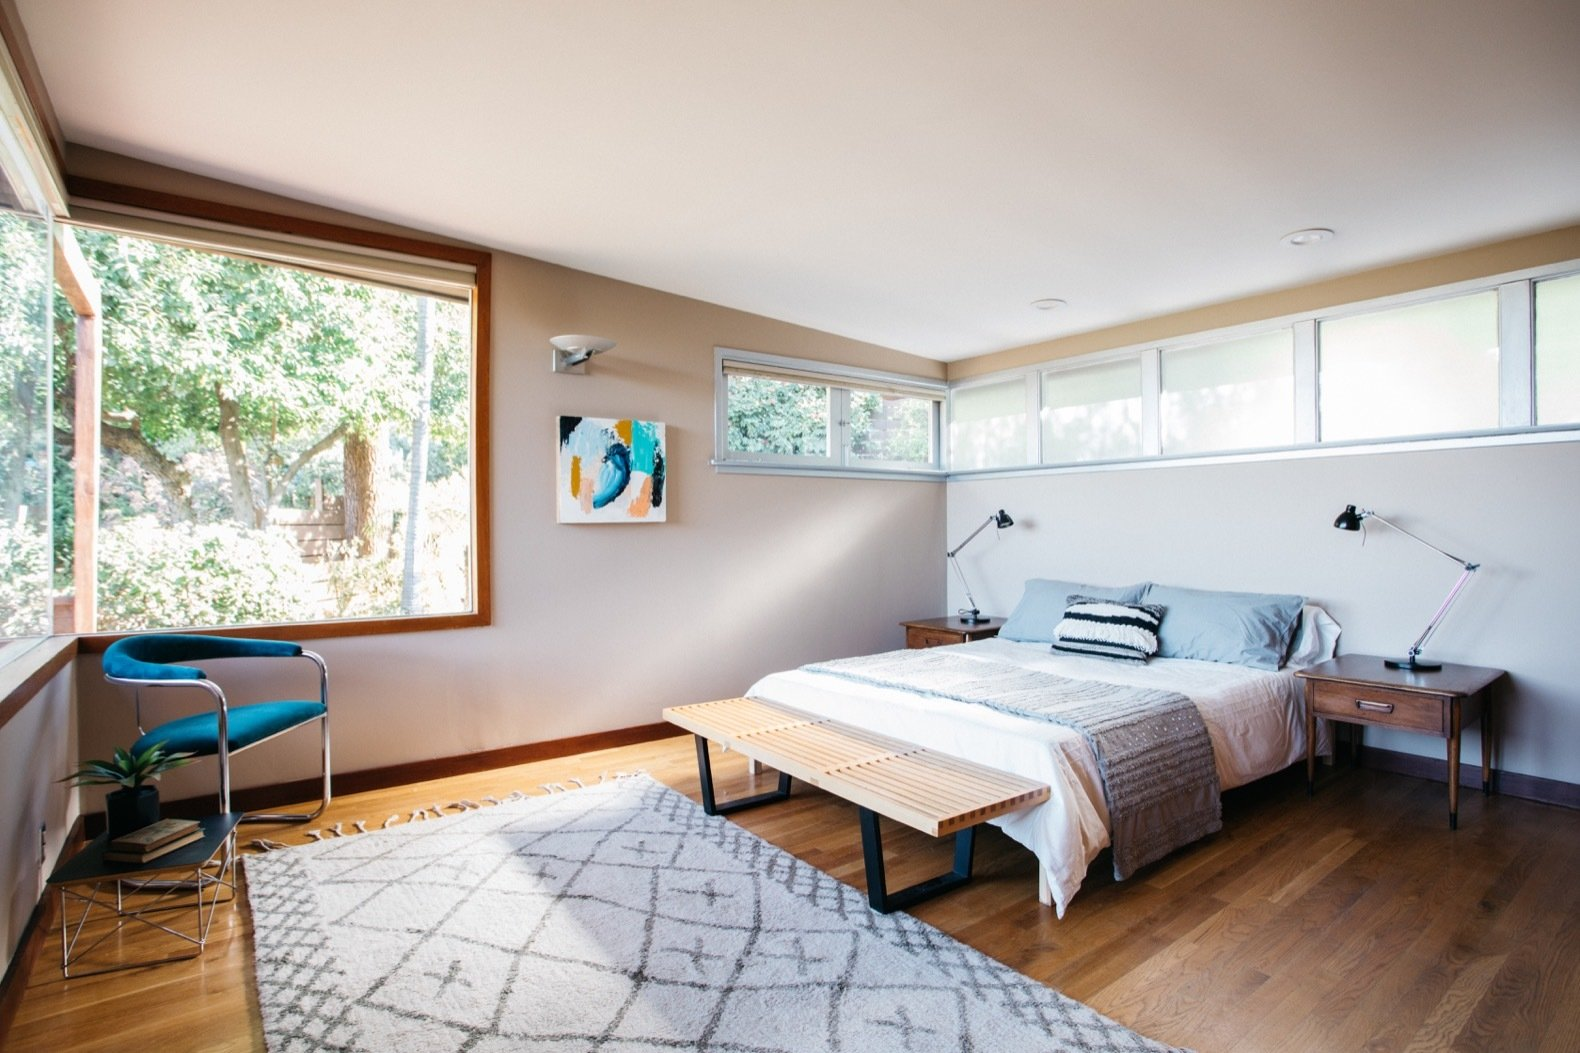 John Kewell Midcentury Home bedroom